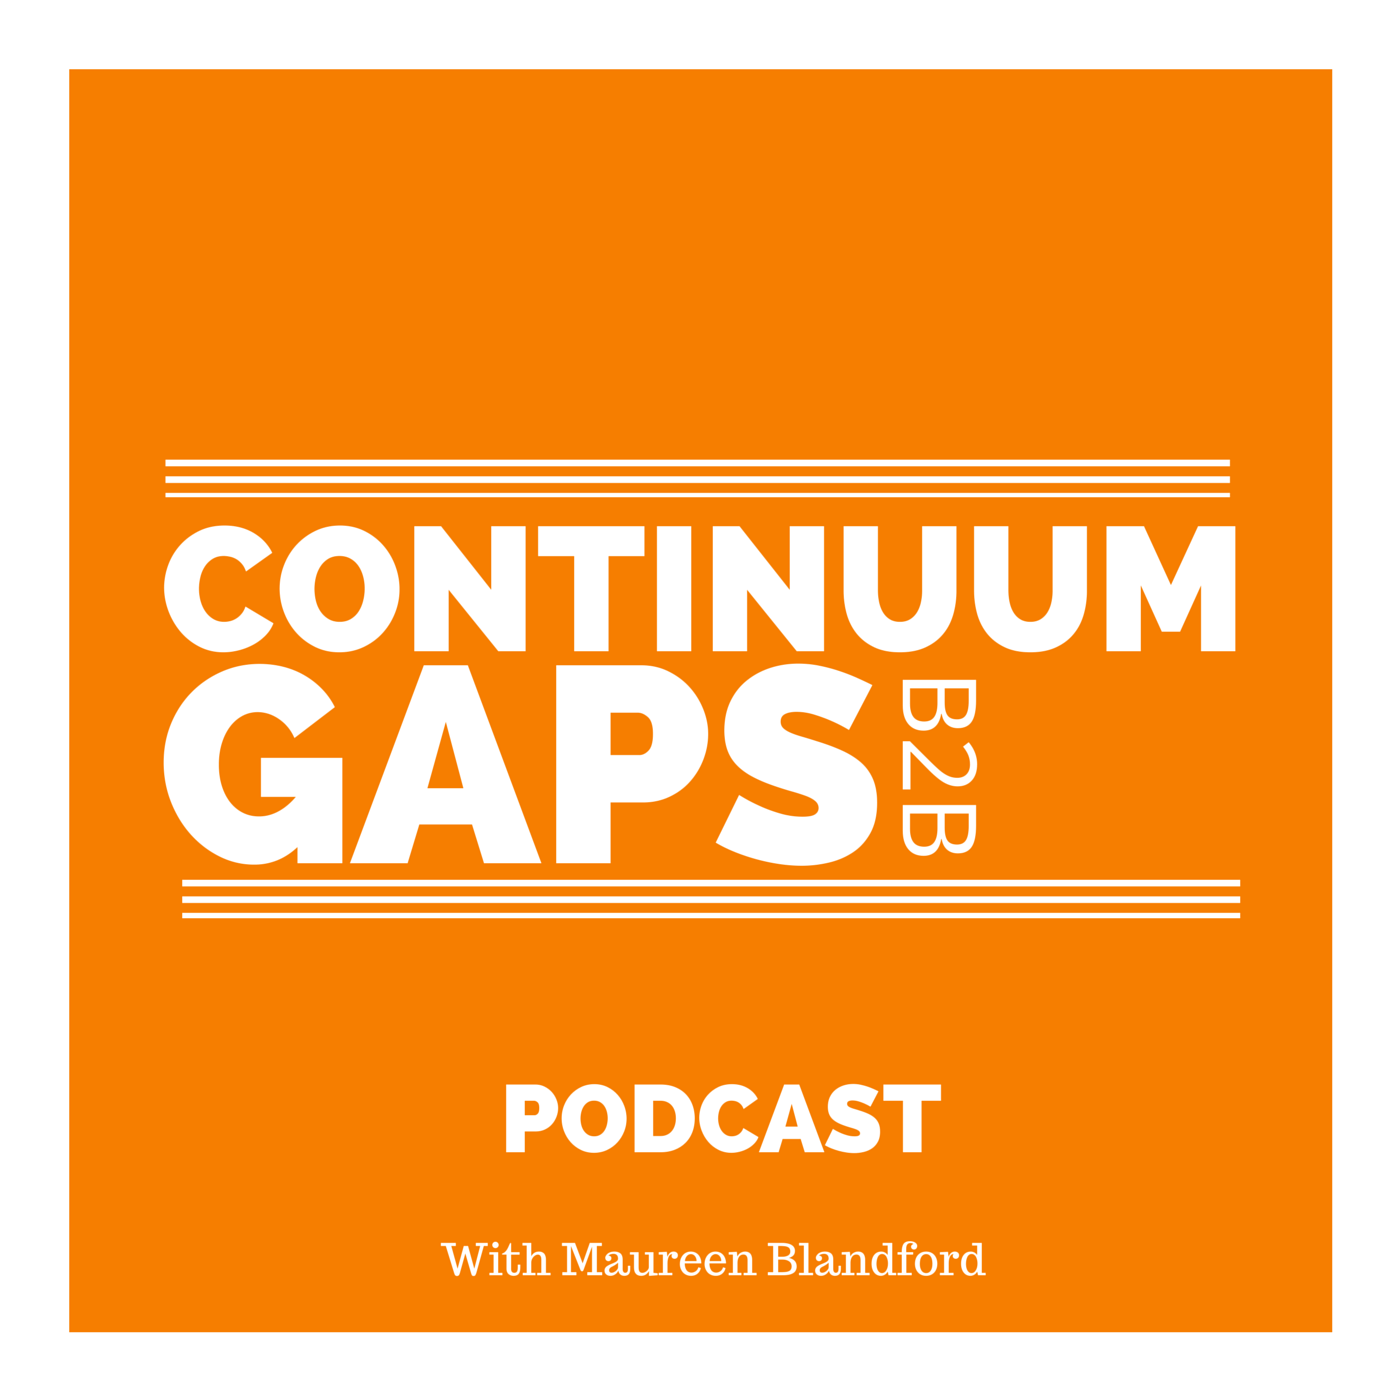 B2B Continuum Gaps podcast